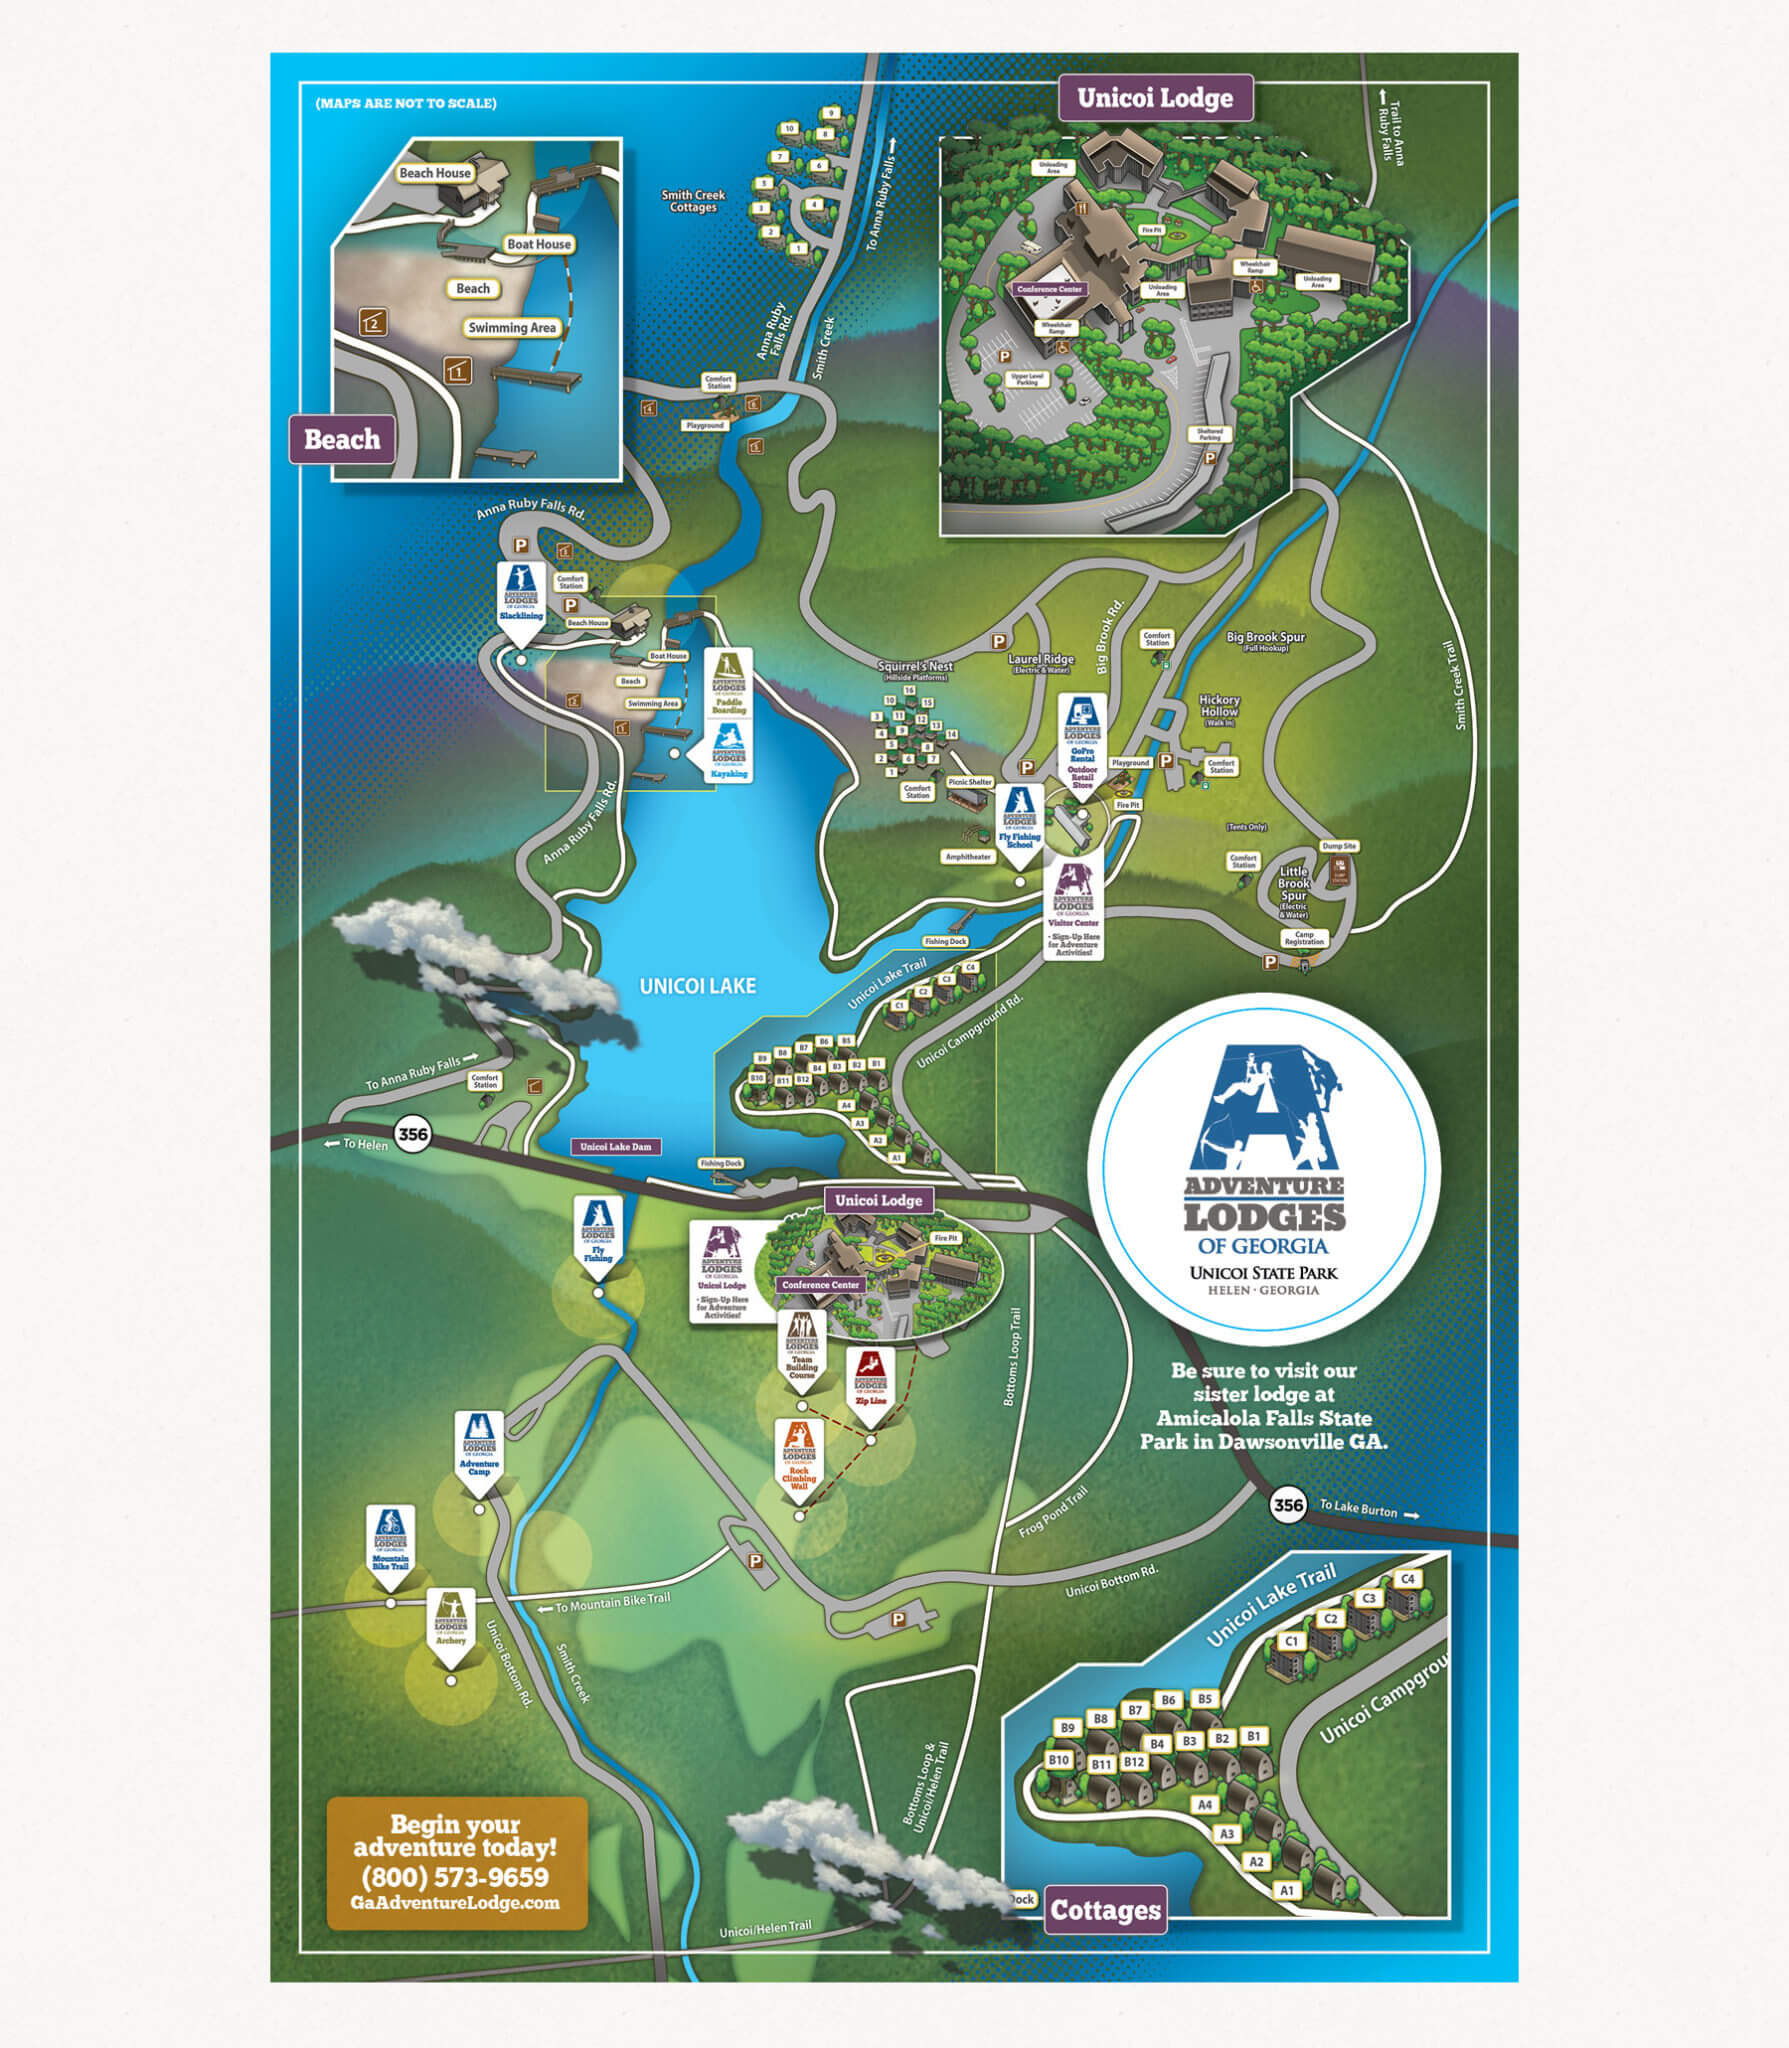 Click Here To Download The Park Map.